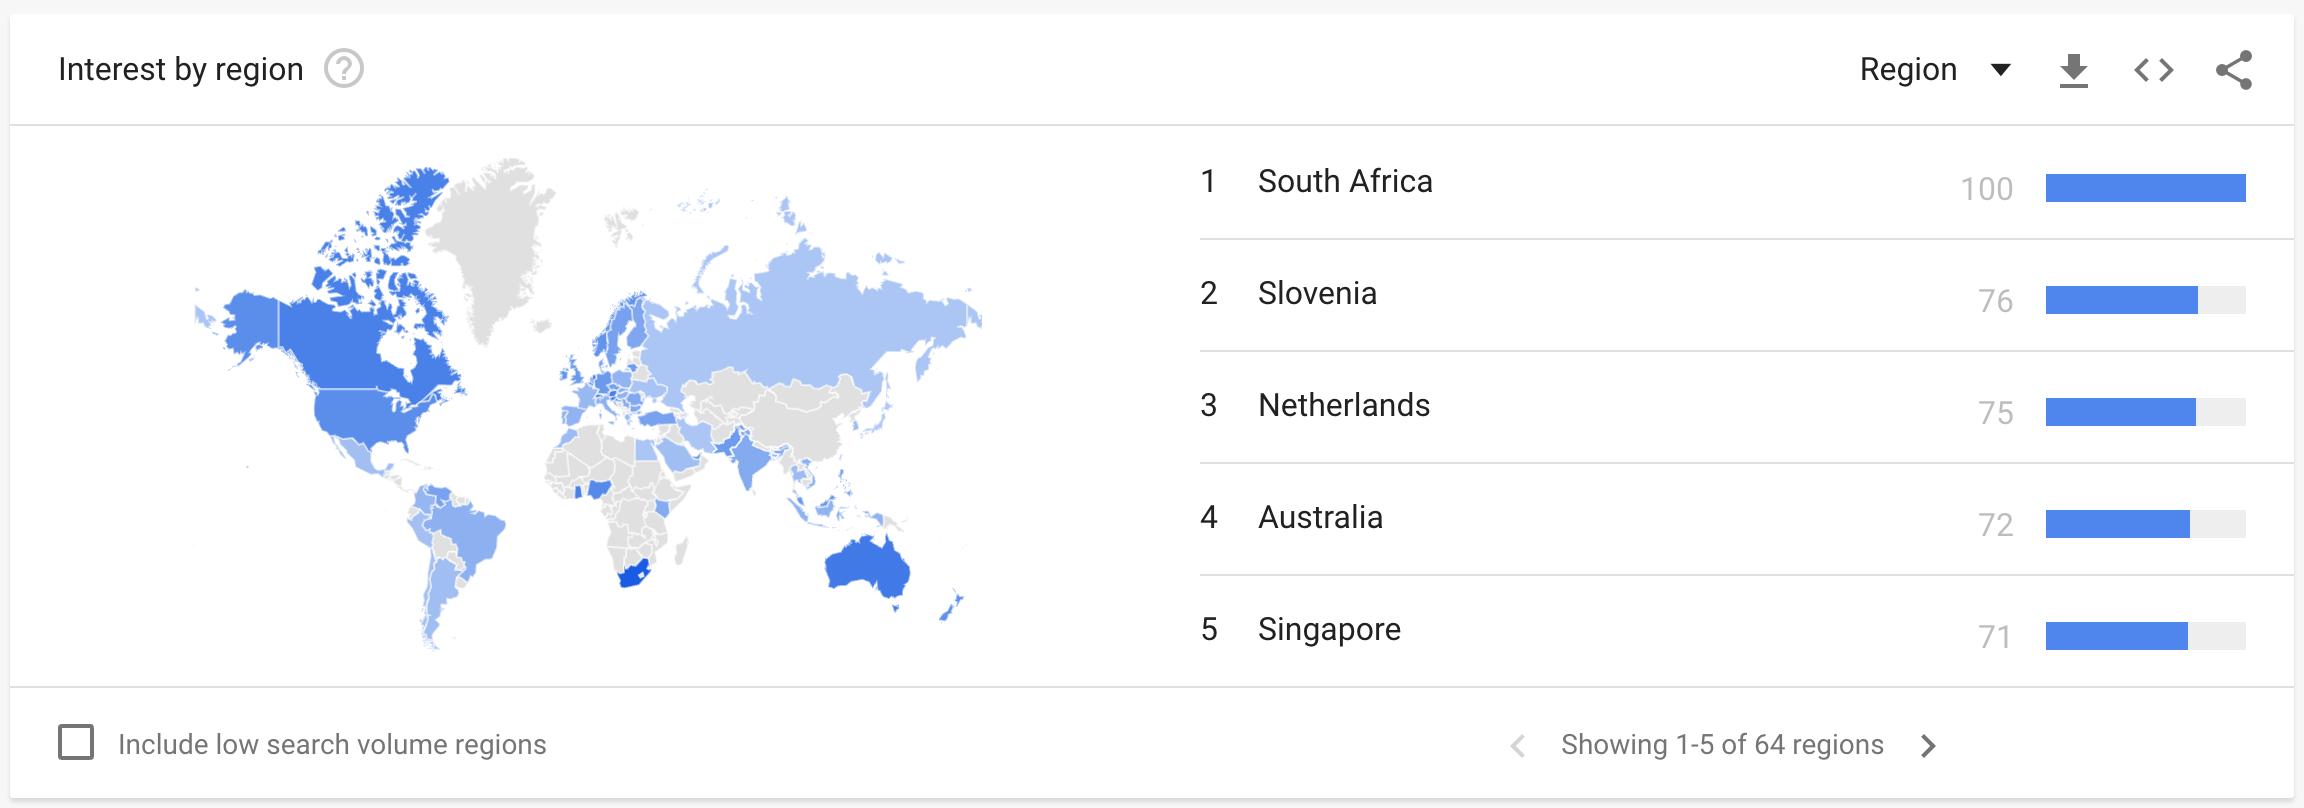 Interest by region for Google Queries of Bitcoin, from Google Trends.